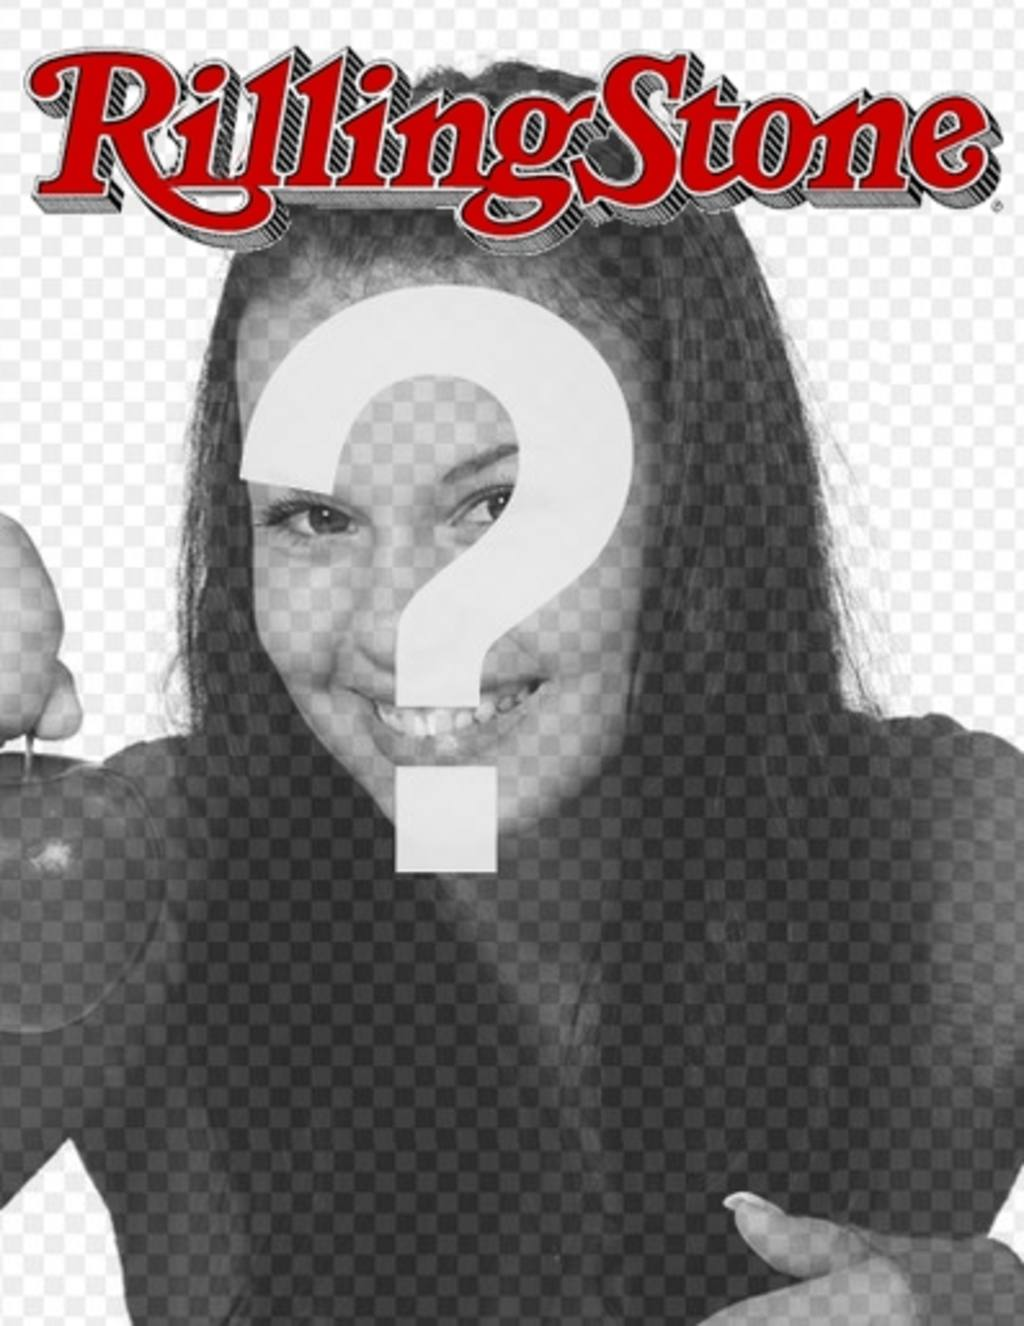 Rolling Stone cover customizable with your photo. Edit the template from the page itself, just upload an image. Salt in a magazine